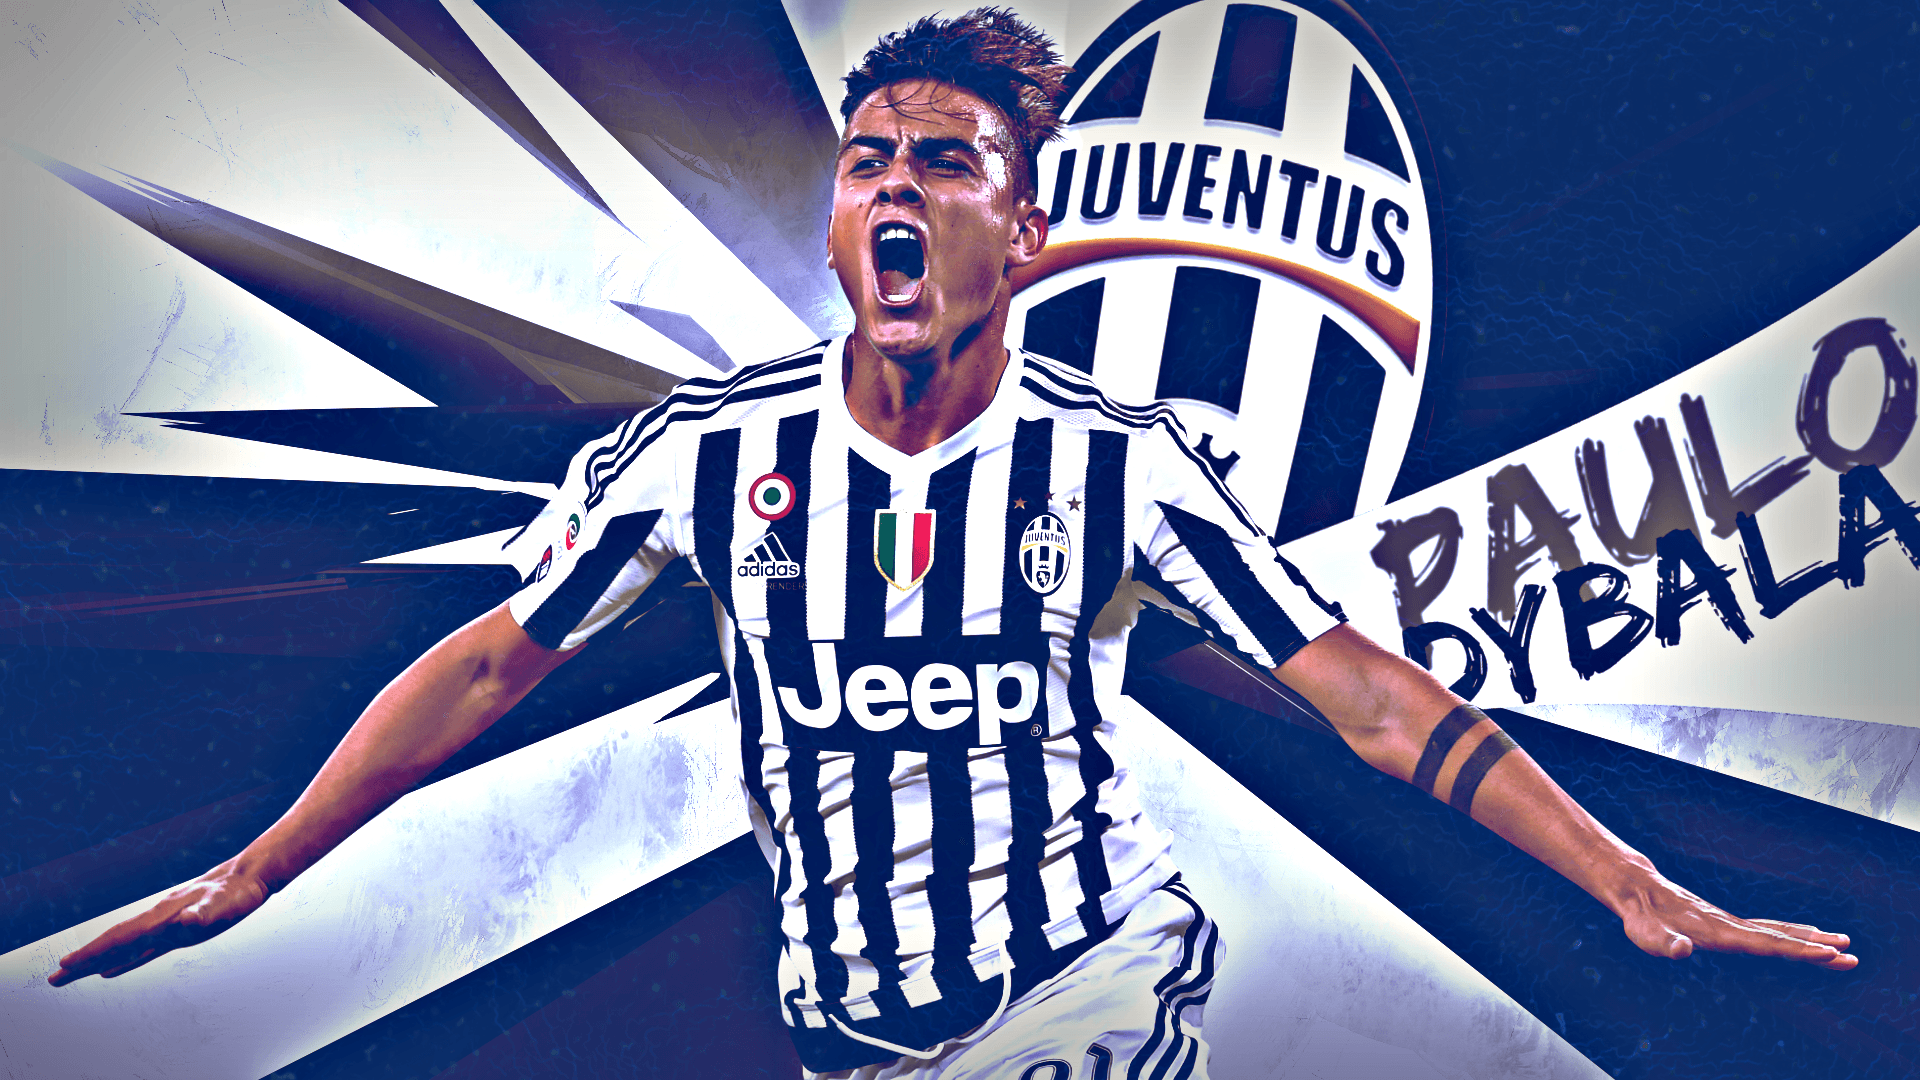 juventus wallpaper hd 2017